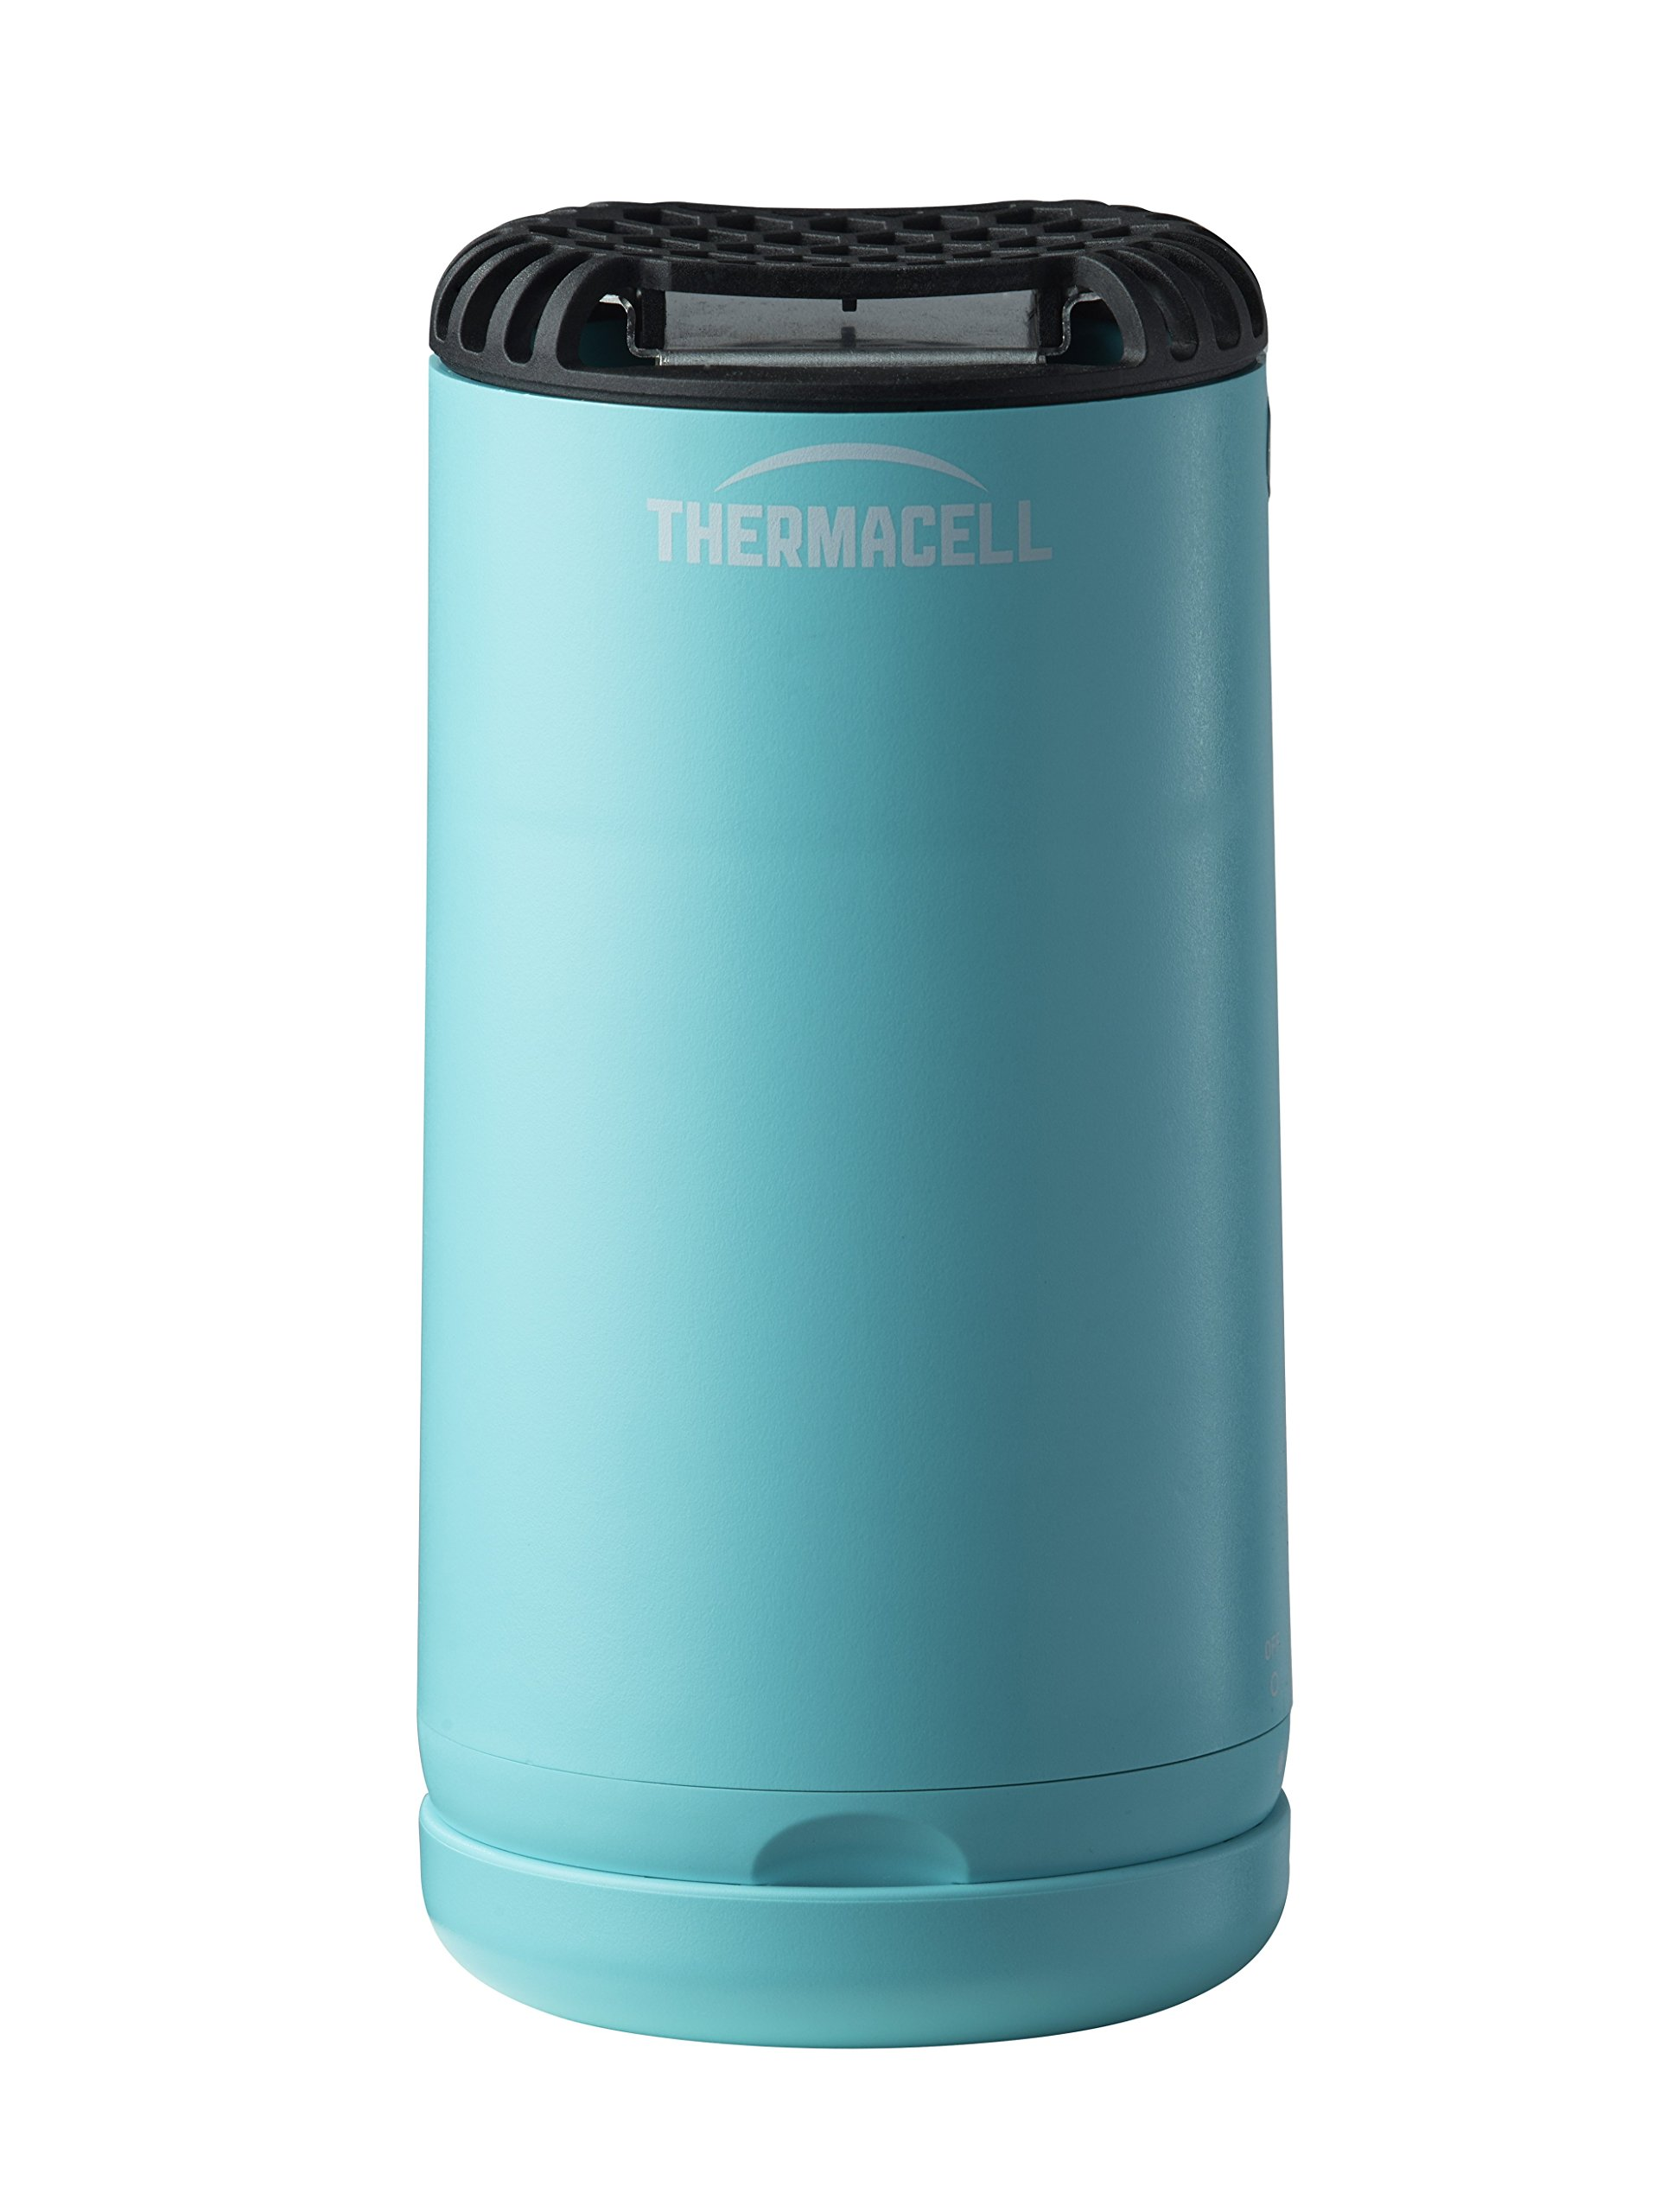 Thermacell MR-PSB Patio Shield Mosquito Repeller, Glacial Blue by Thermacell